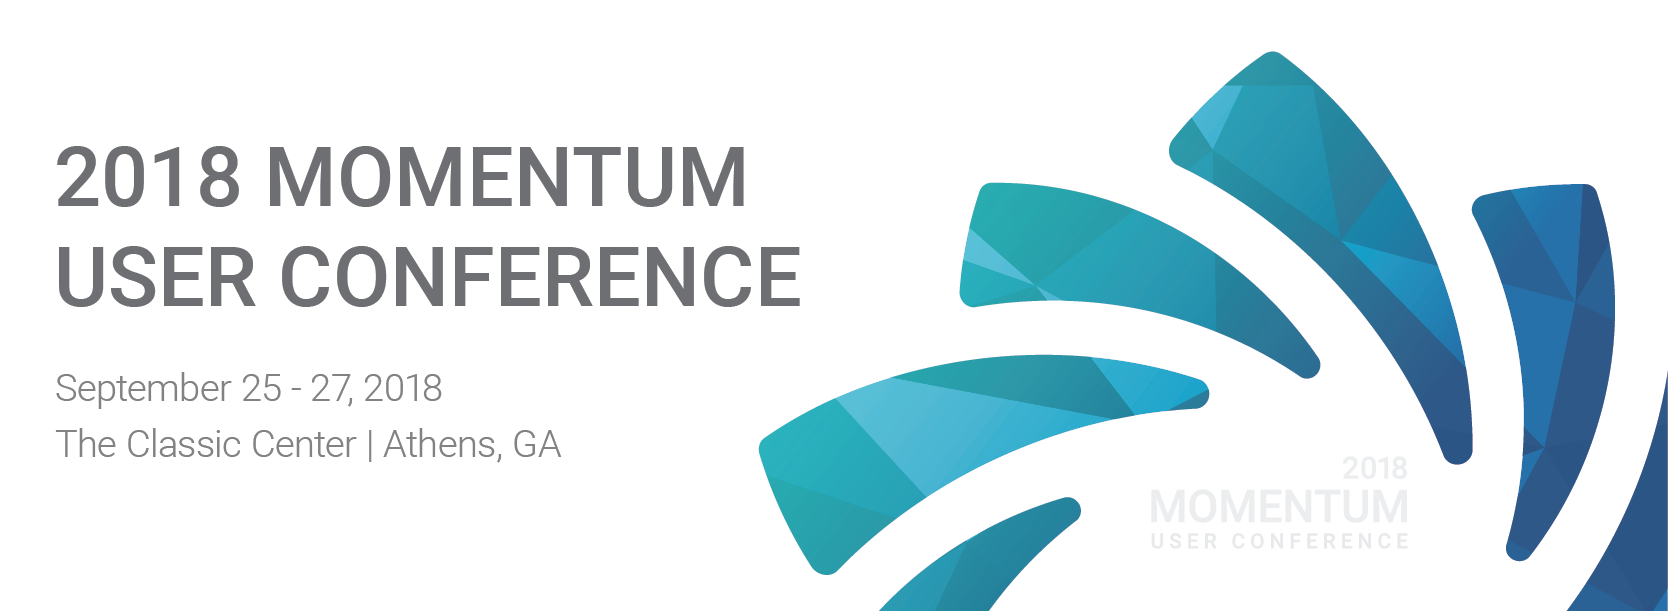 2018 Momentum User Conference